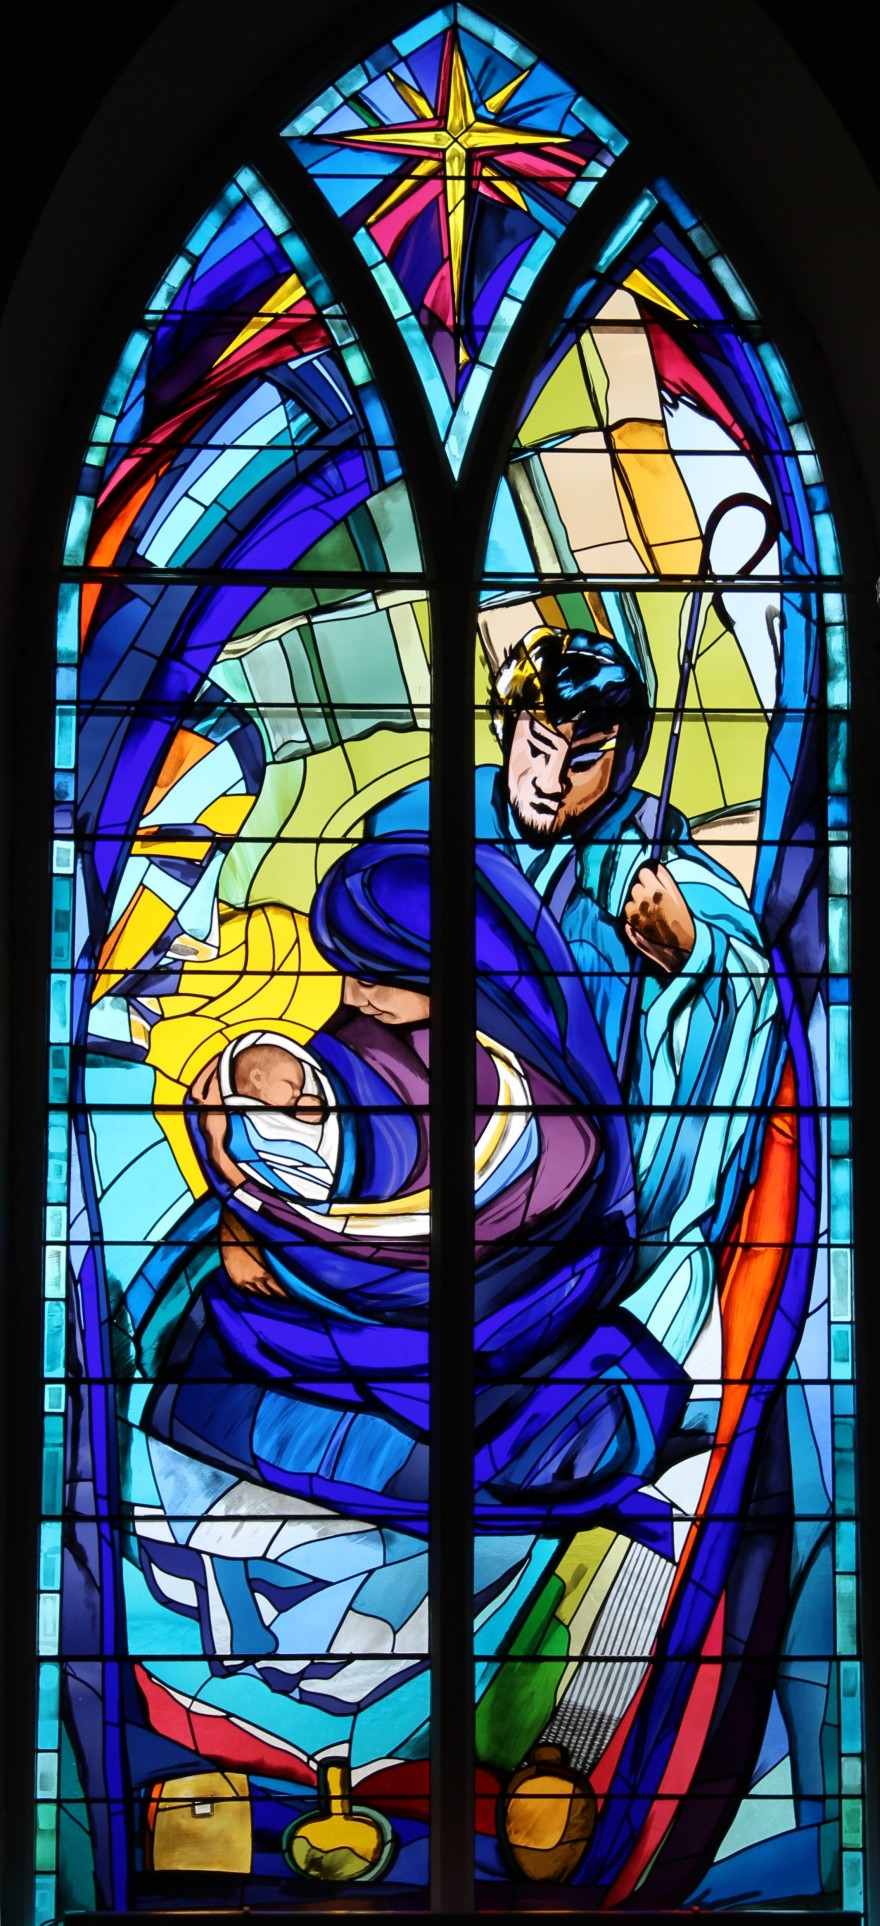 1 E. Butler-Cole Aiken, Nativity Window (Longforgan), 2002, 440 x 200 cm, Credit EBCA